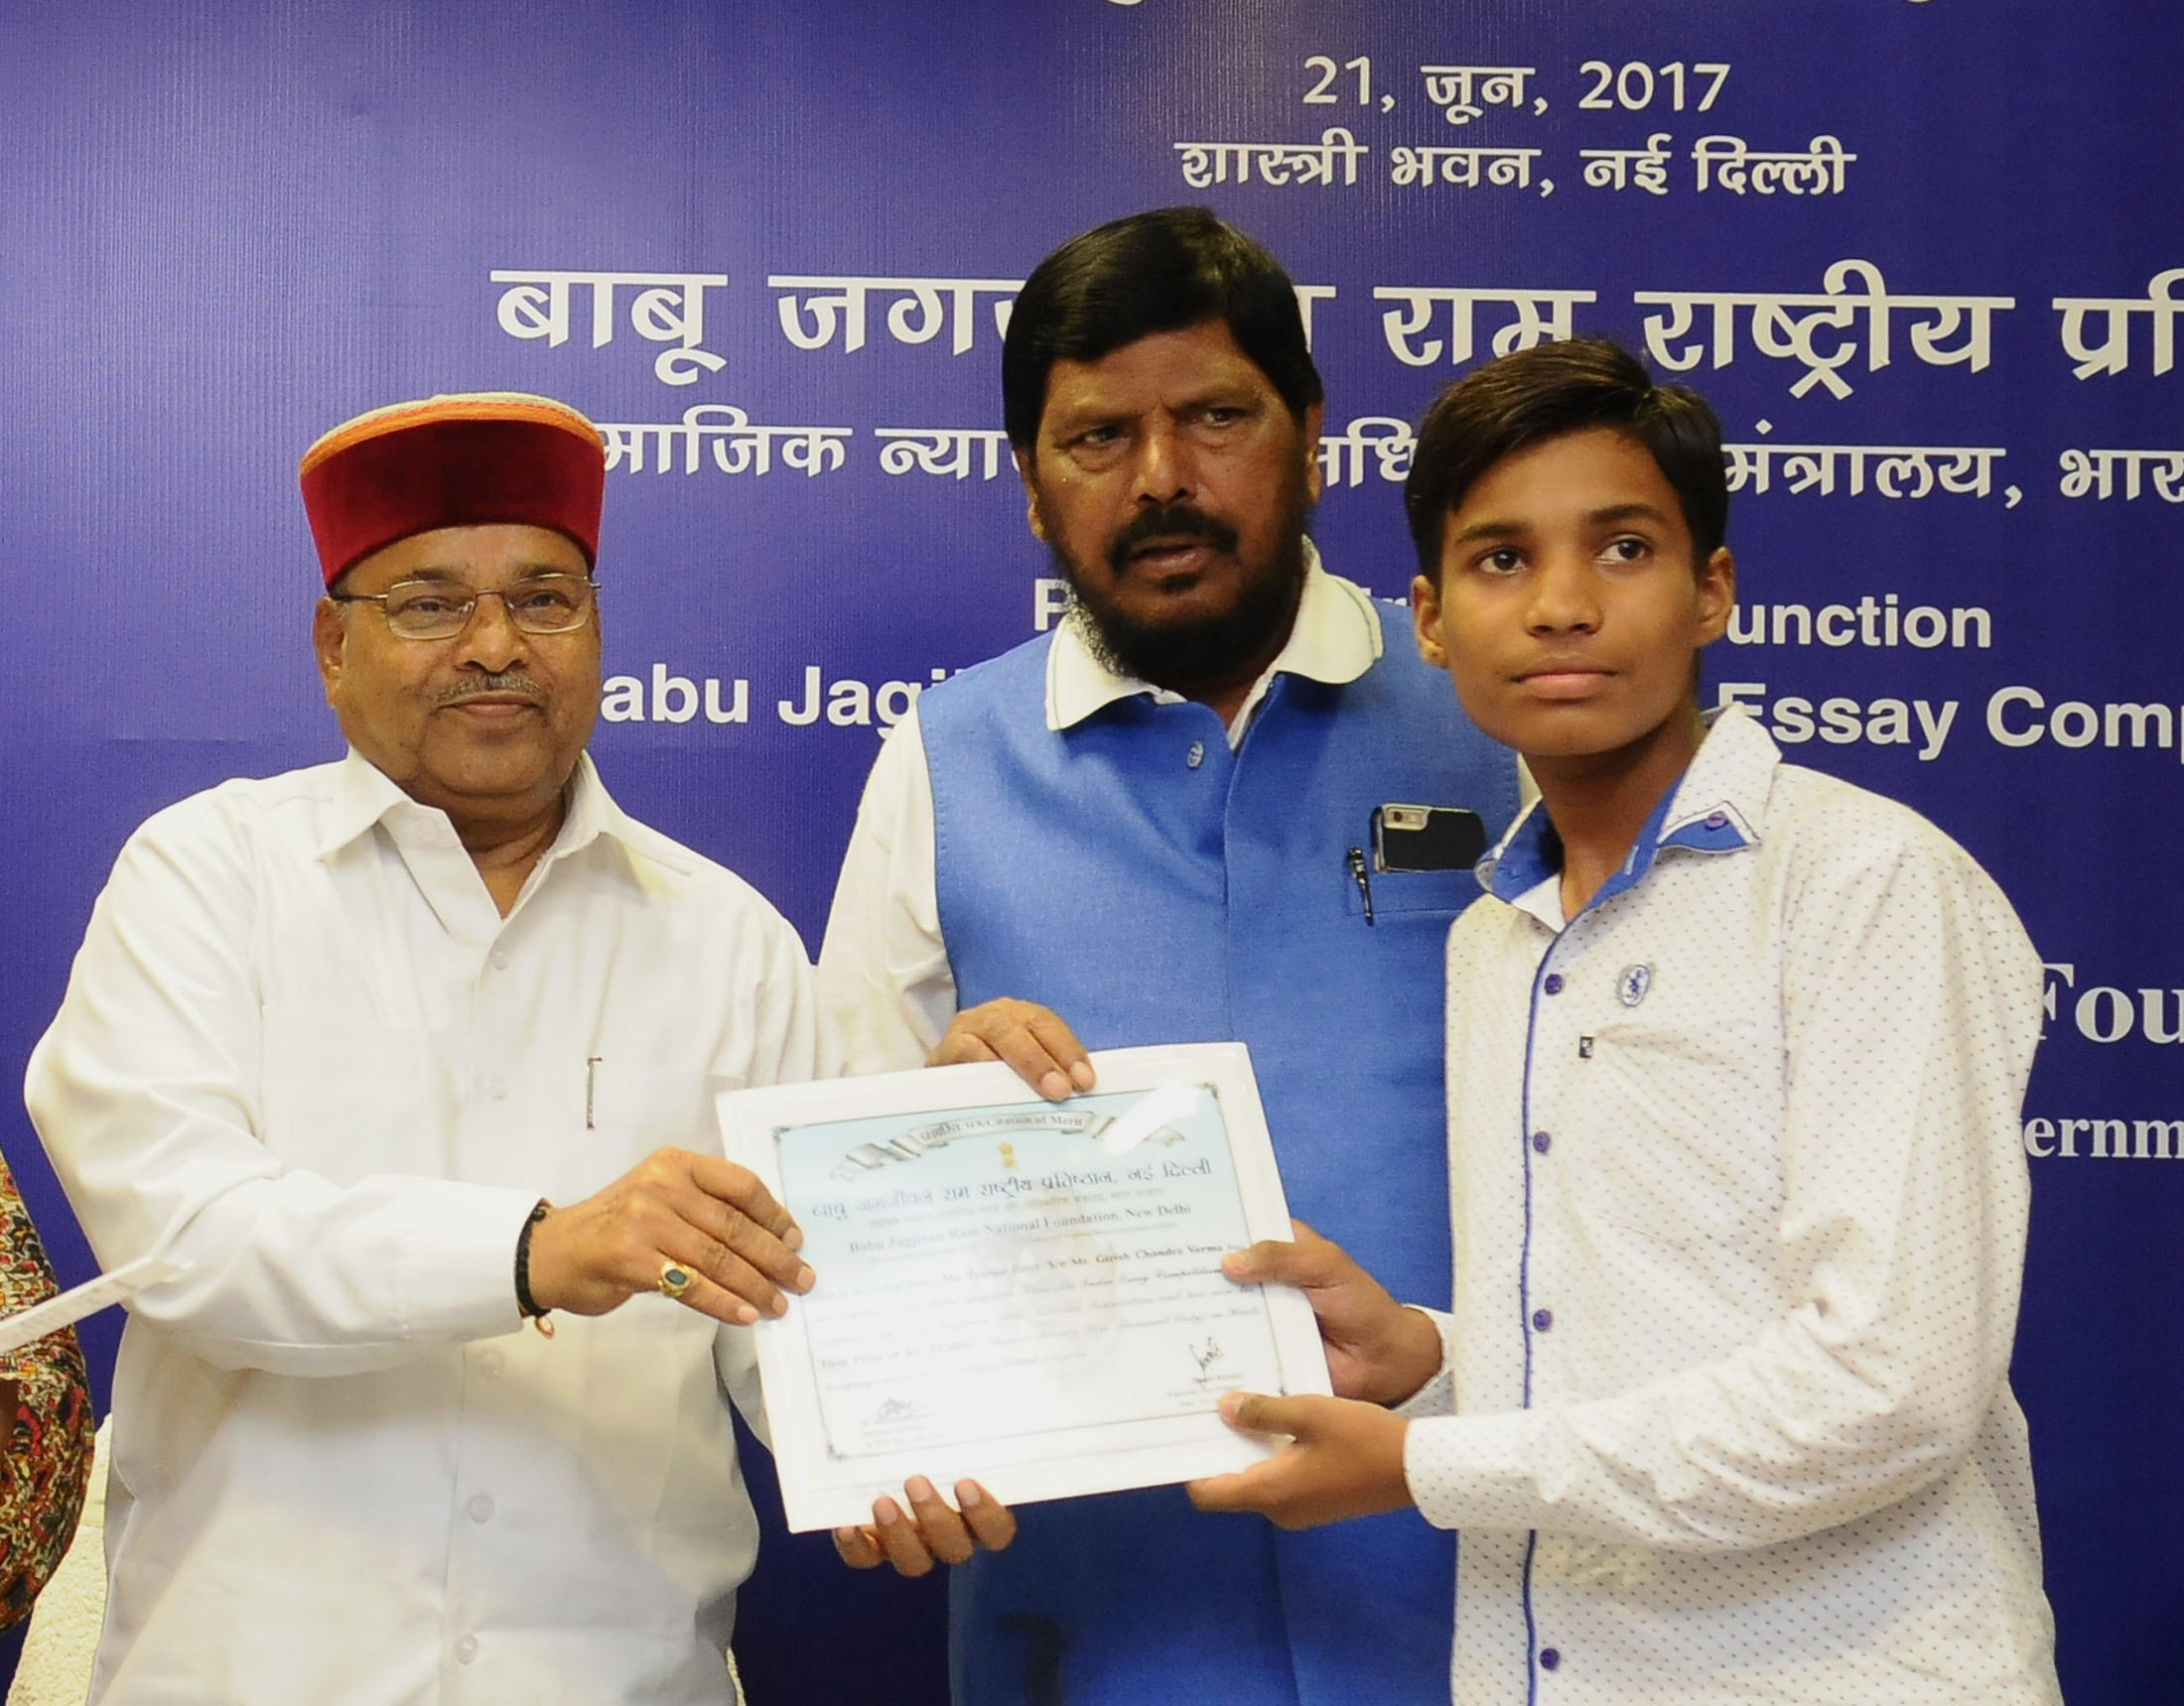 jagjivan ram essay competition result